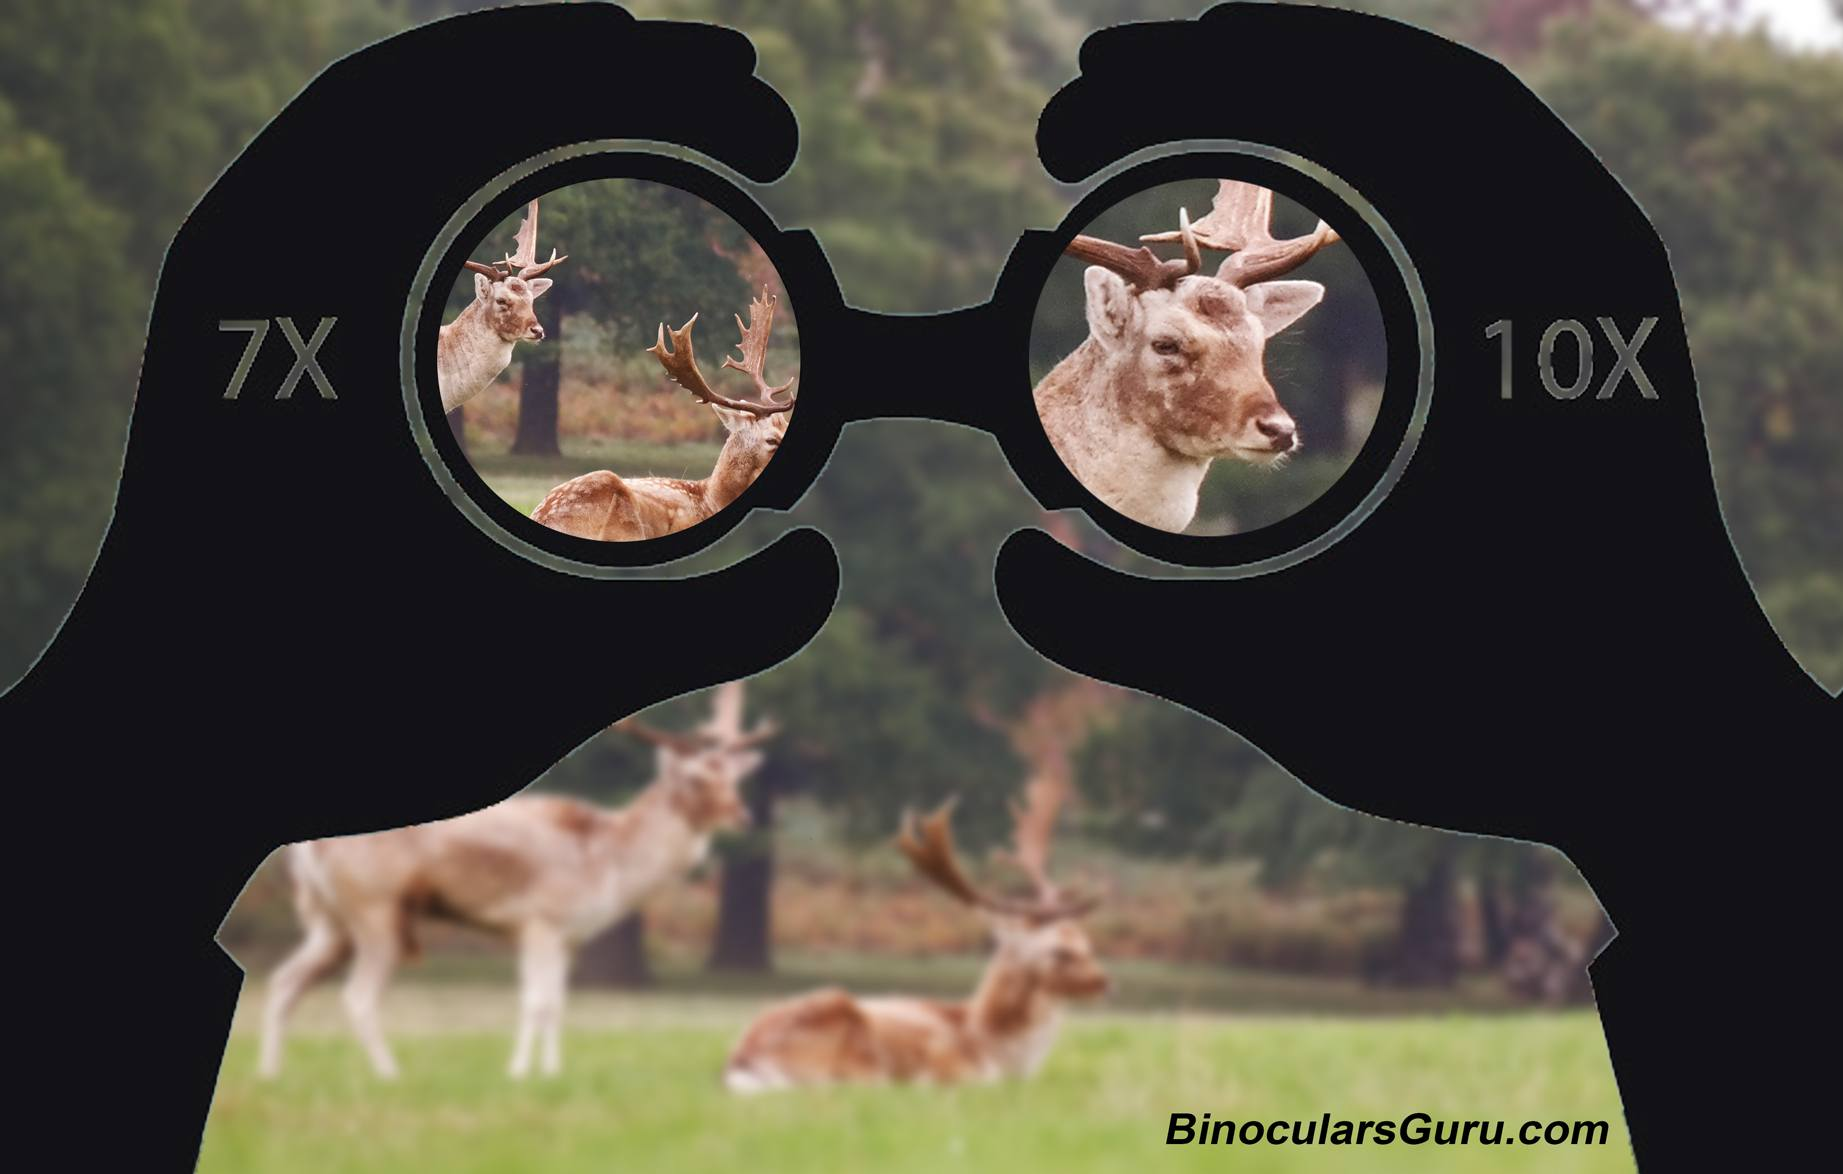 magnification of binoculars